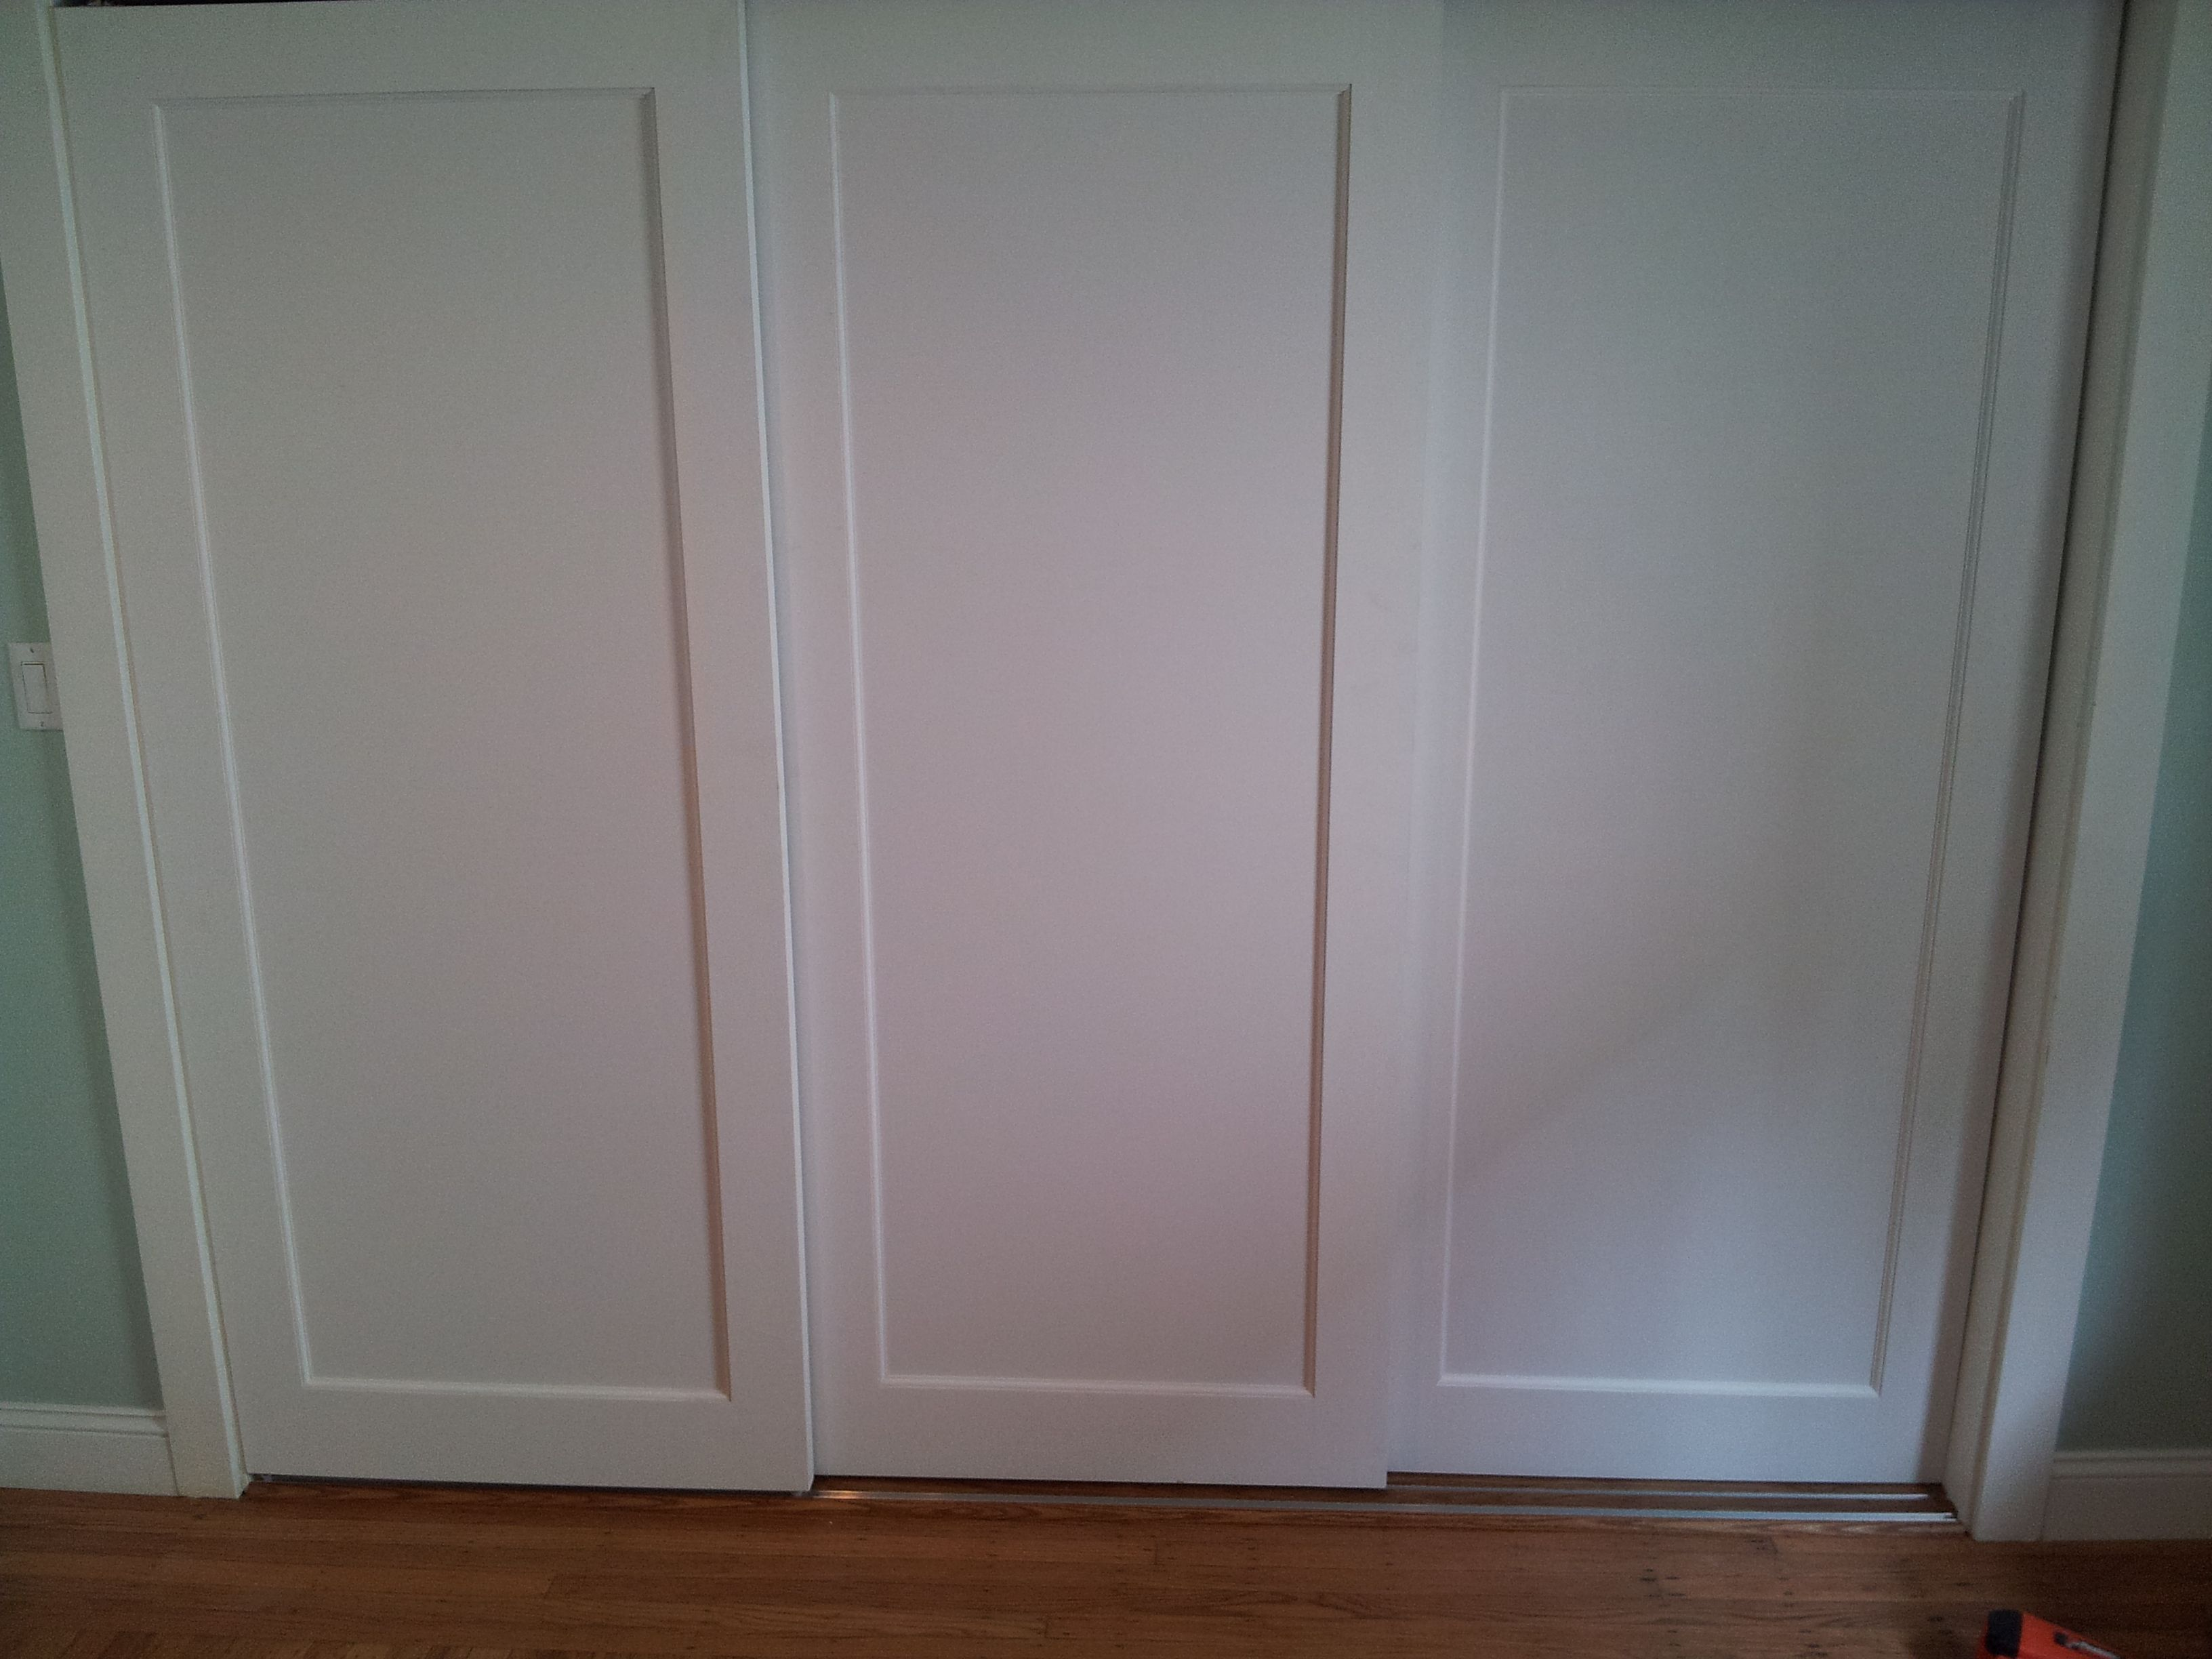 Panel Doors Closet & ClosetDoors5